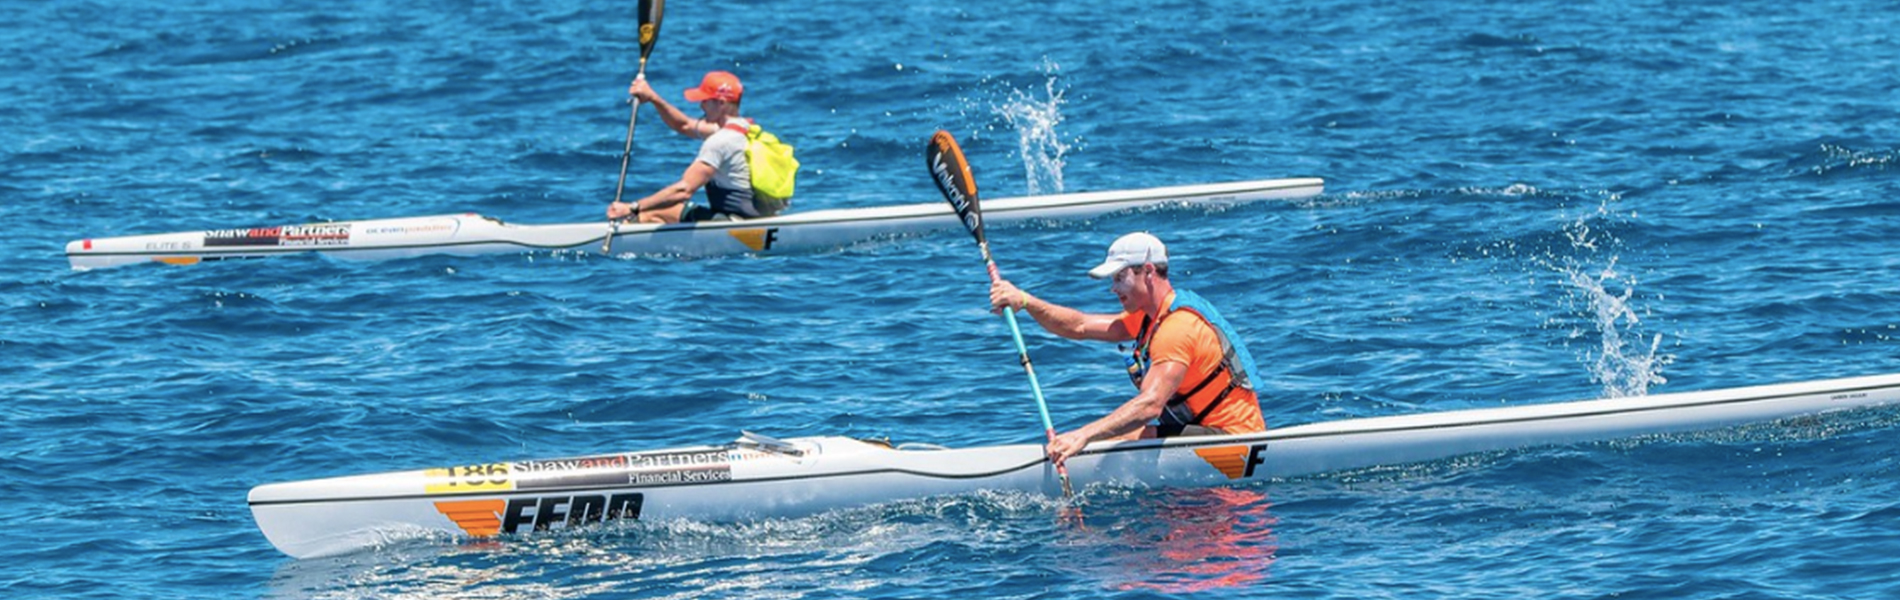 Surf Skis - Kayaks - Paddles - Events and more - Oceanpaddler